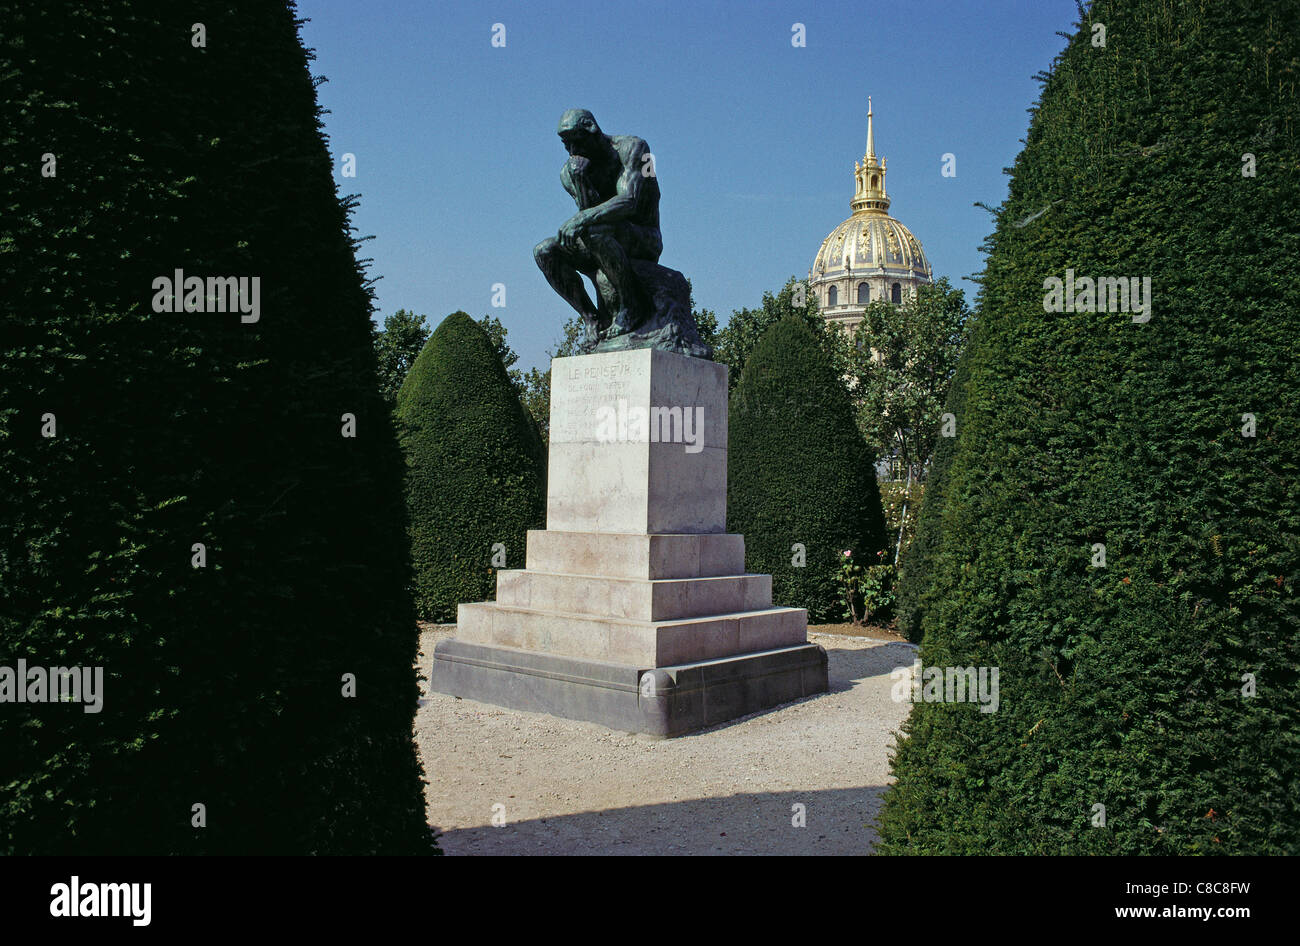 Paris. France. The Thinker, sculpture by Rodin in the garden of Musee Rodin, Rodin Museum, 7th Arrondissement. - Stock Image